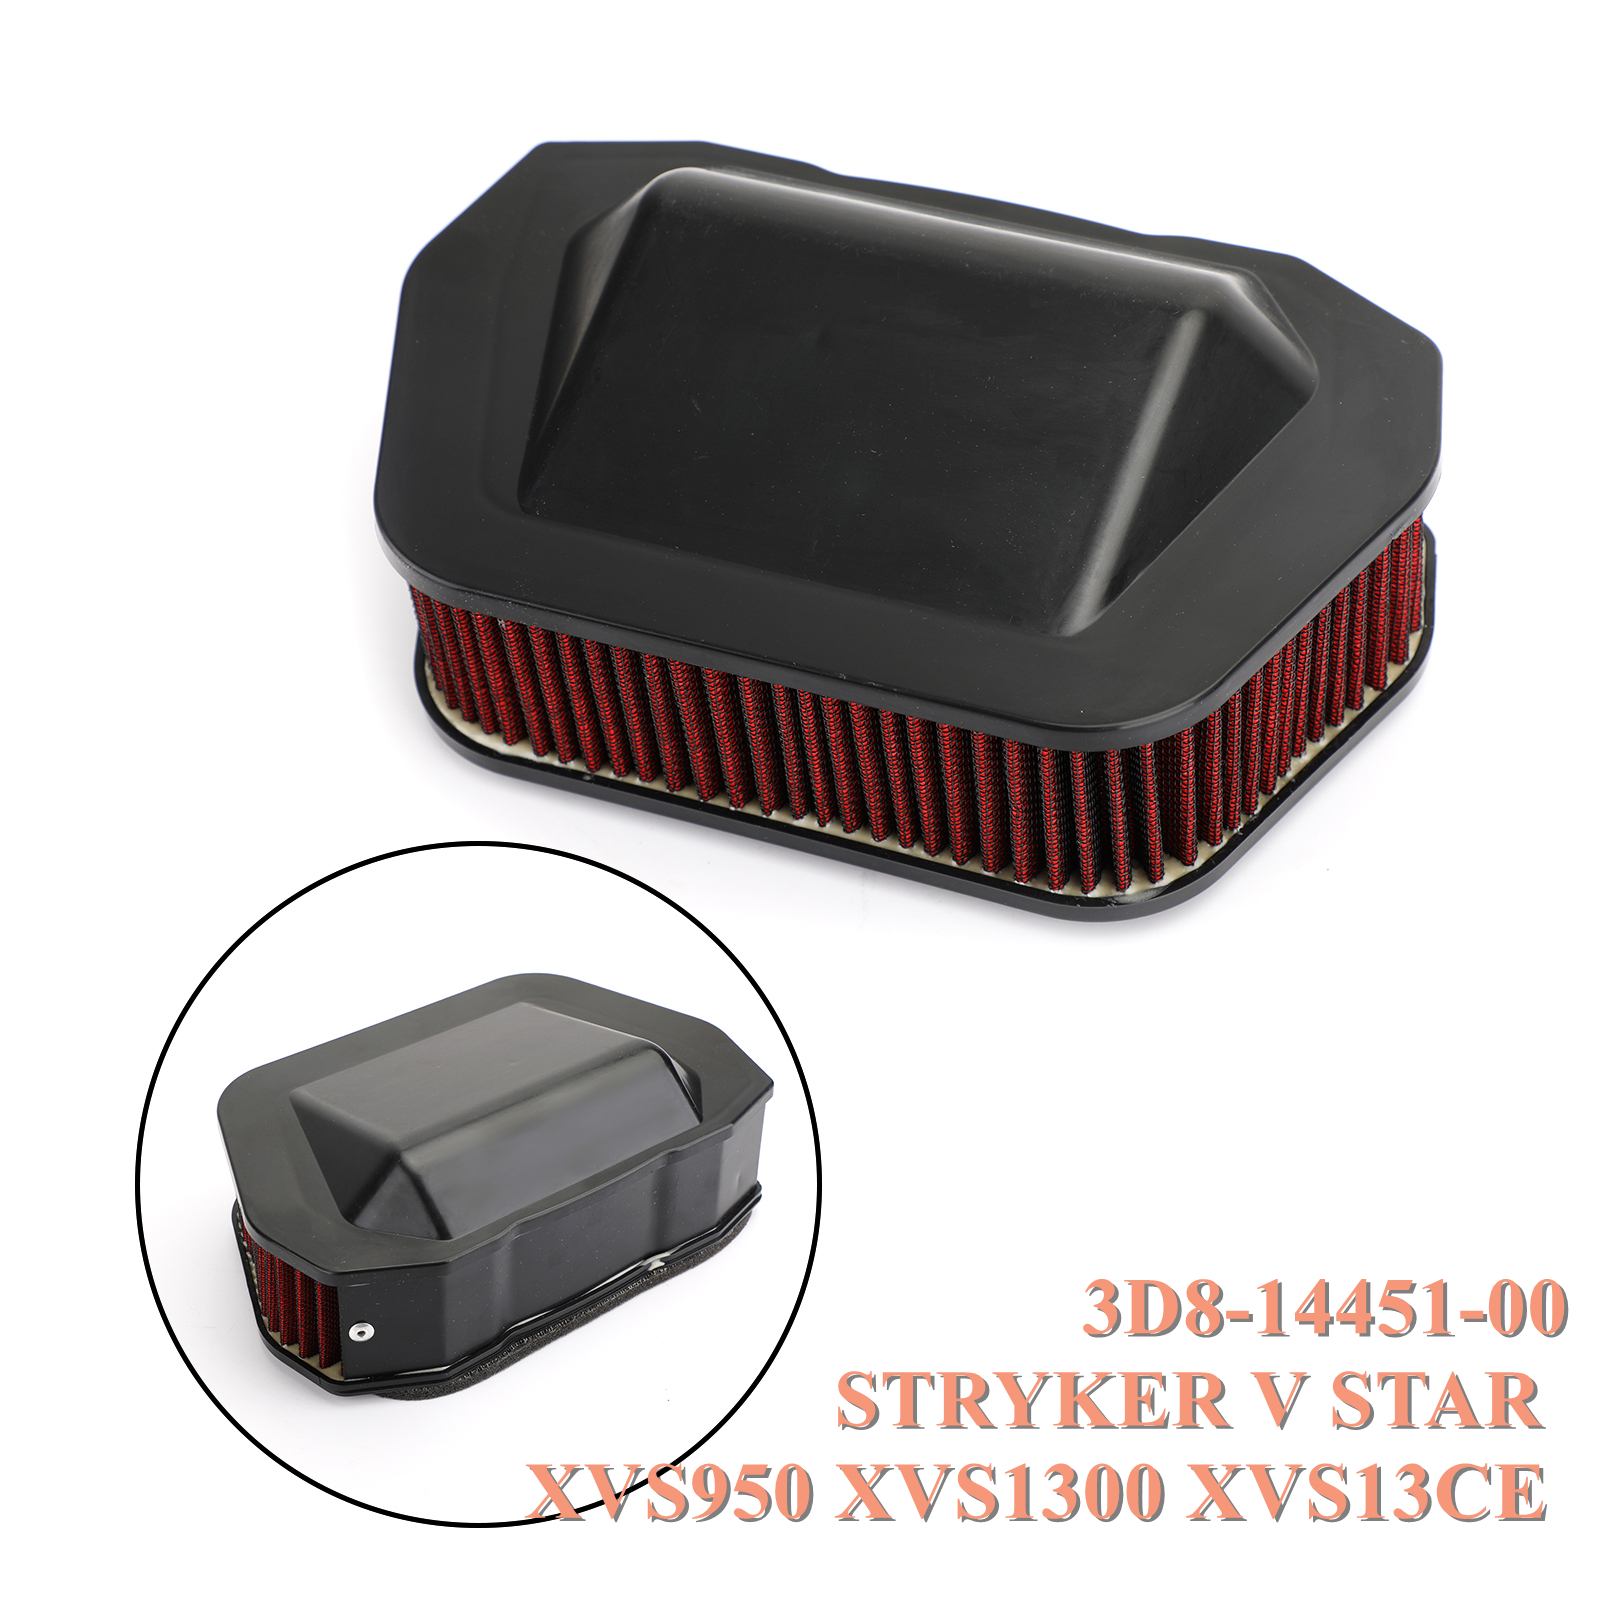 Artudatech Air Filter Cleaner For <font><b>Yamaha</b></font> STRYKER V STAR <font><b>XVS950</b></font> XVS1300 XVS13CE 2007-2017 image